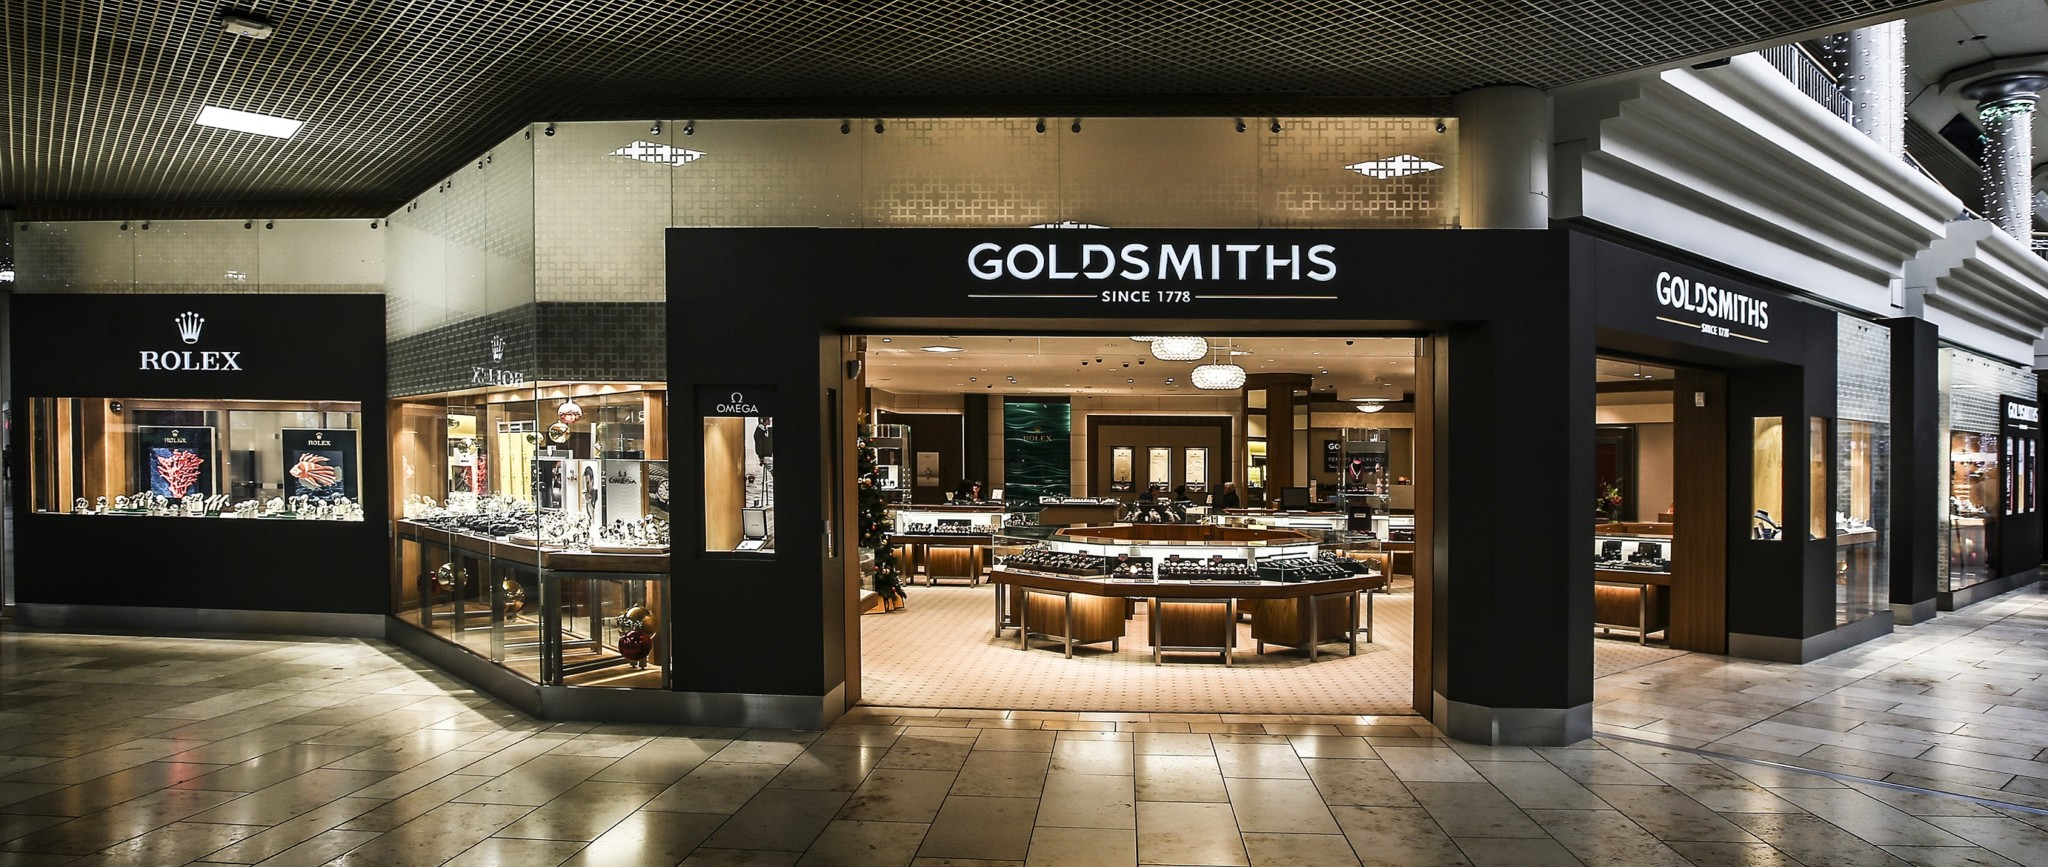 Goldsmiths new intu Metrocentre showroom (2)